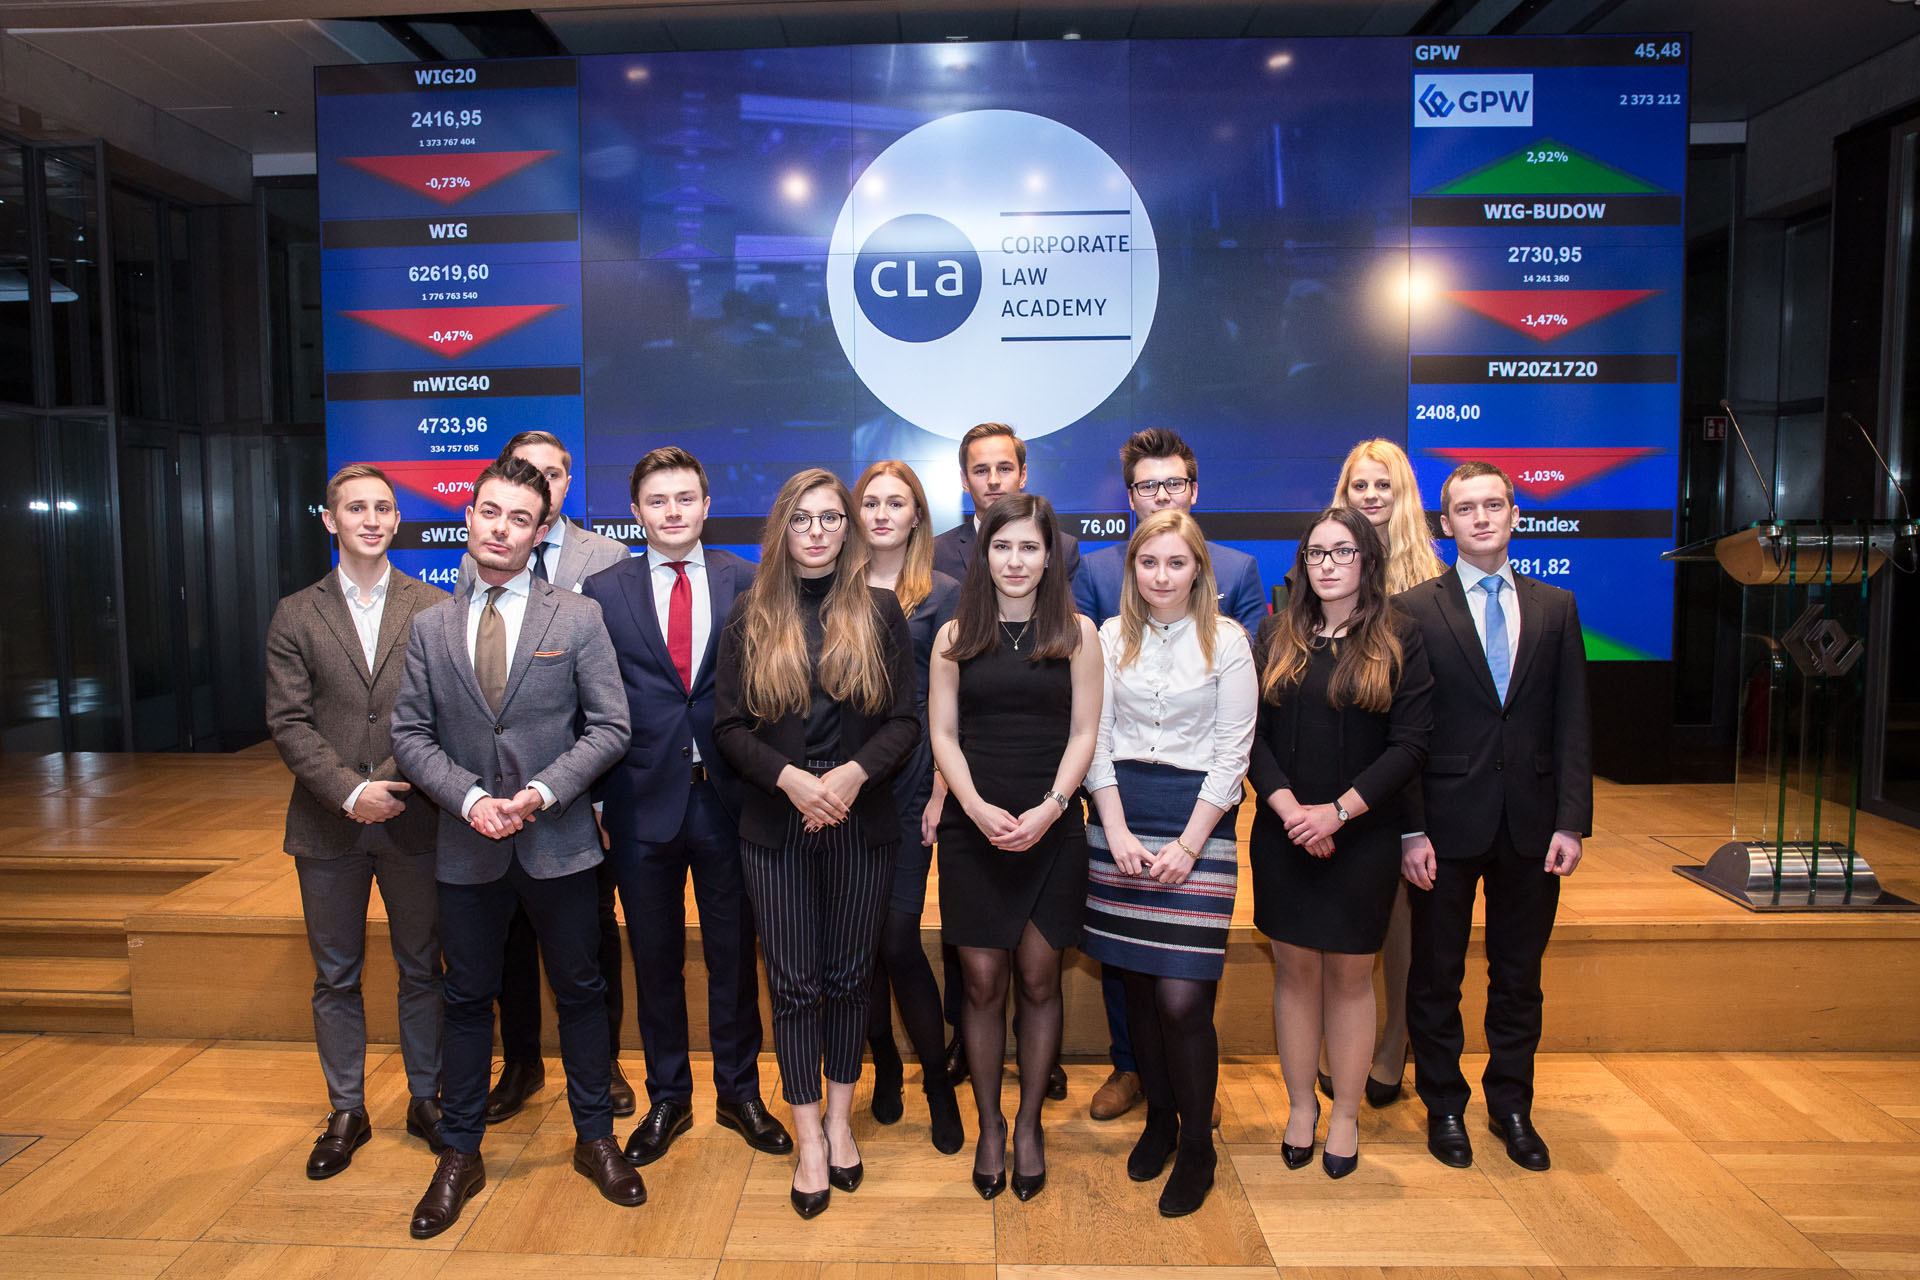 Galeria: IV edycja Corporate Law Academy